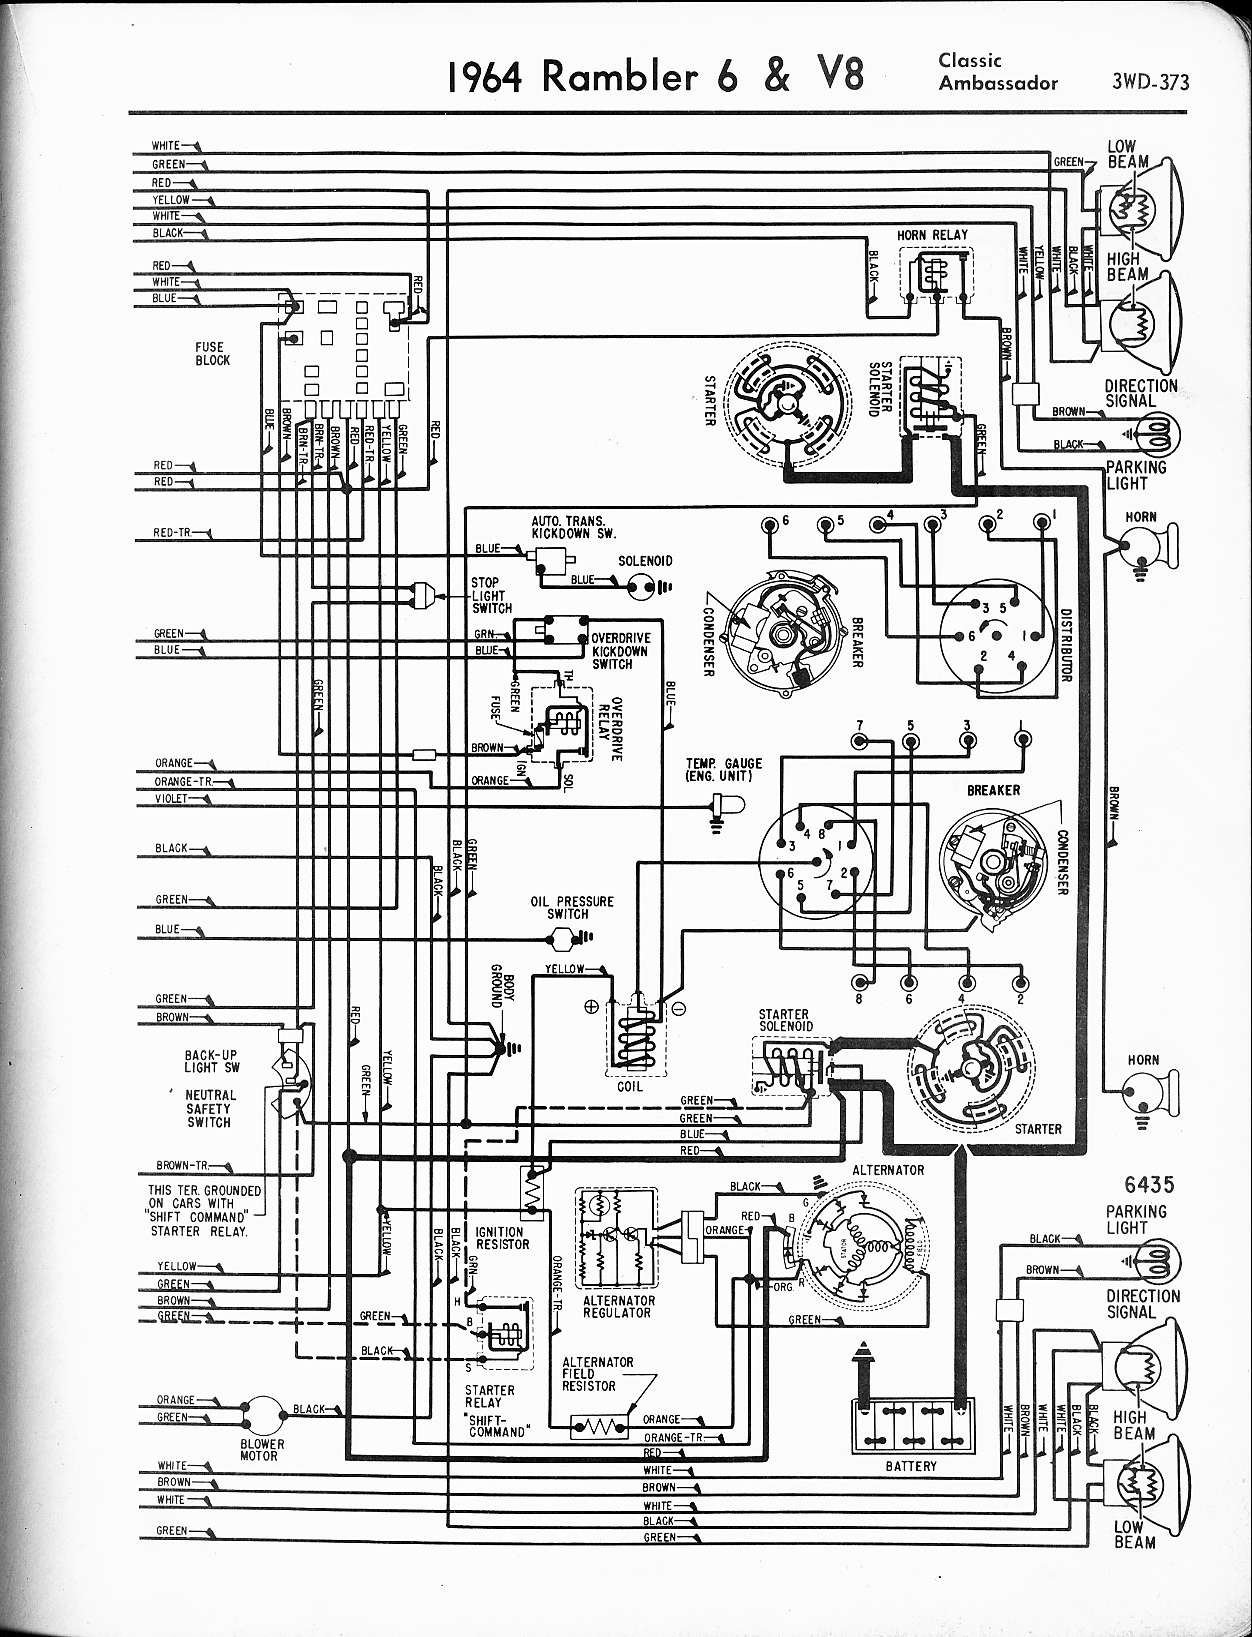 1967 rambler rebel wiring diagram wiring data u2022 rh maxi mail co 1970 AMC Rebel 1970 AMC Rebel